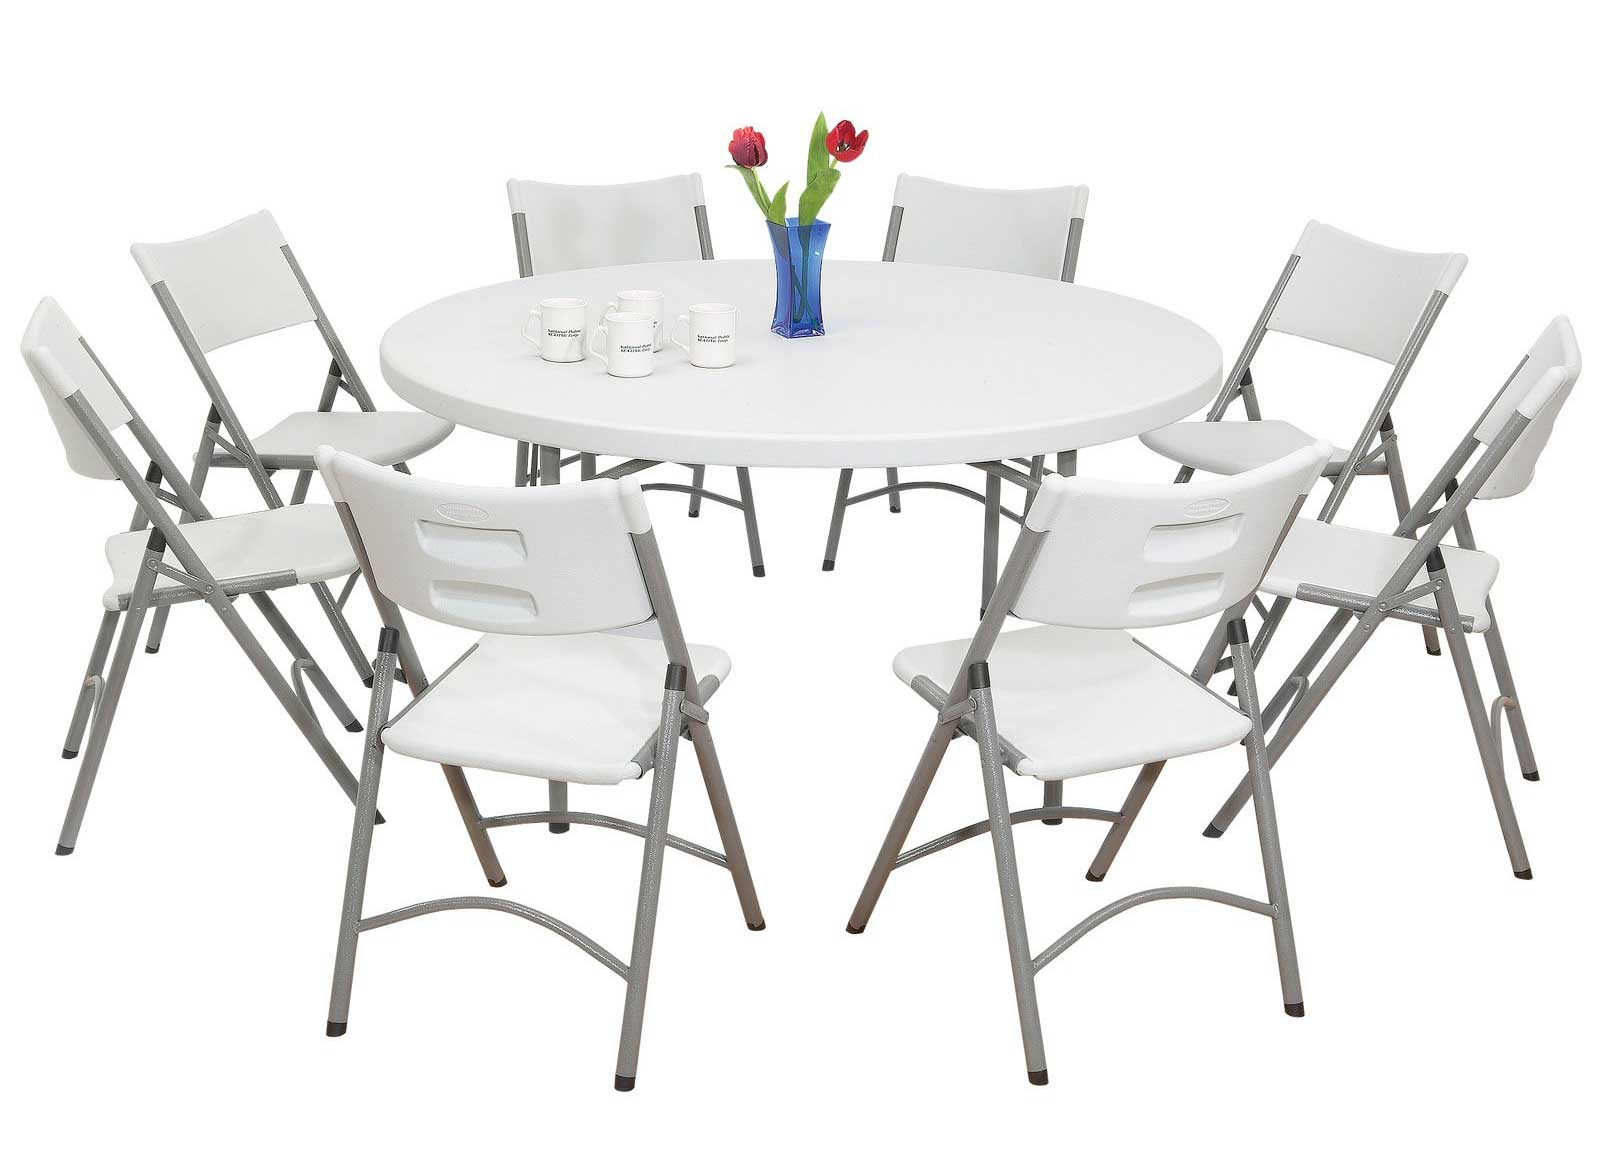 Top Round Card Table and Chairs Set 1600 x 1176 · 87 kB · jpeg